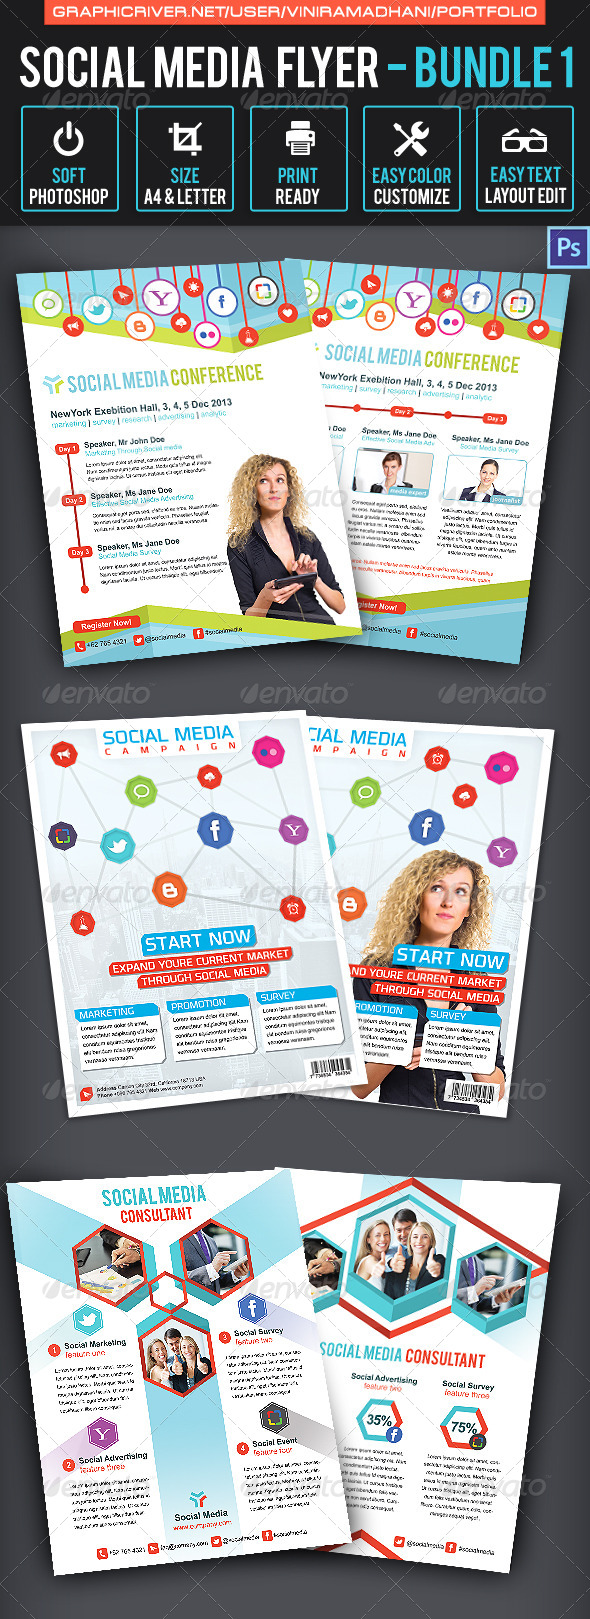 GraphicRiver Social Media Flyer Bundle 1 7025550